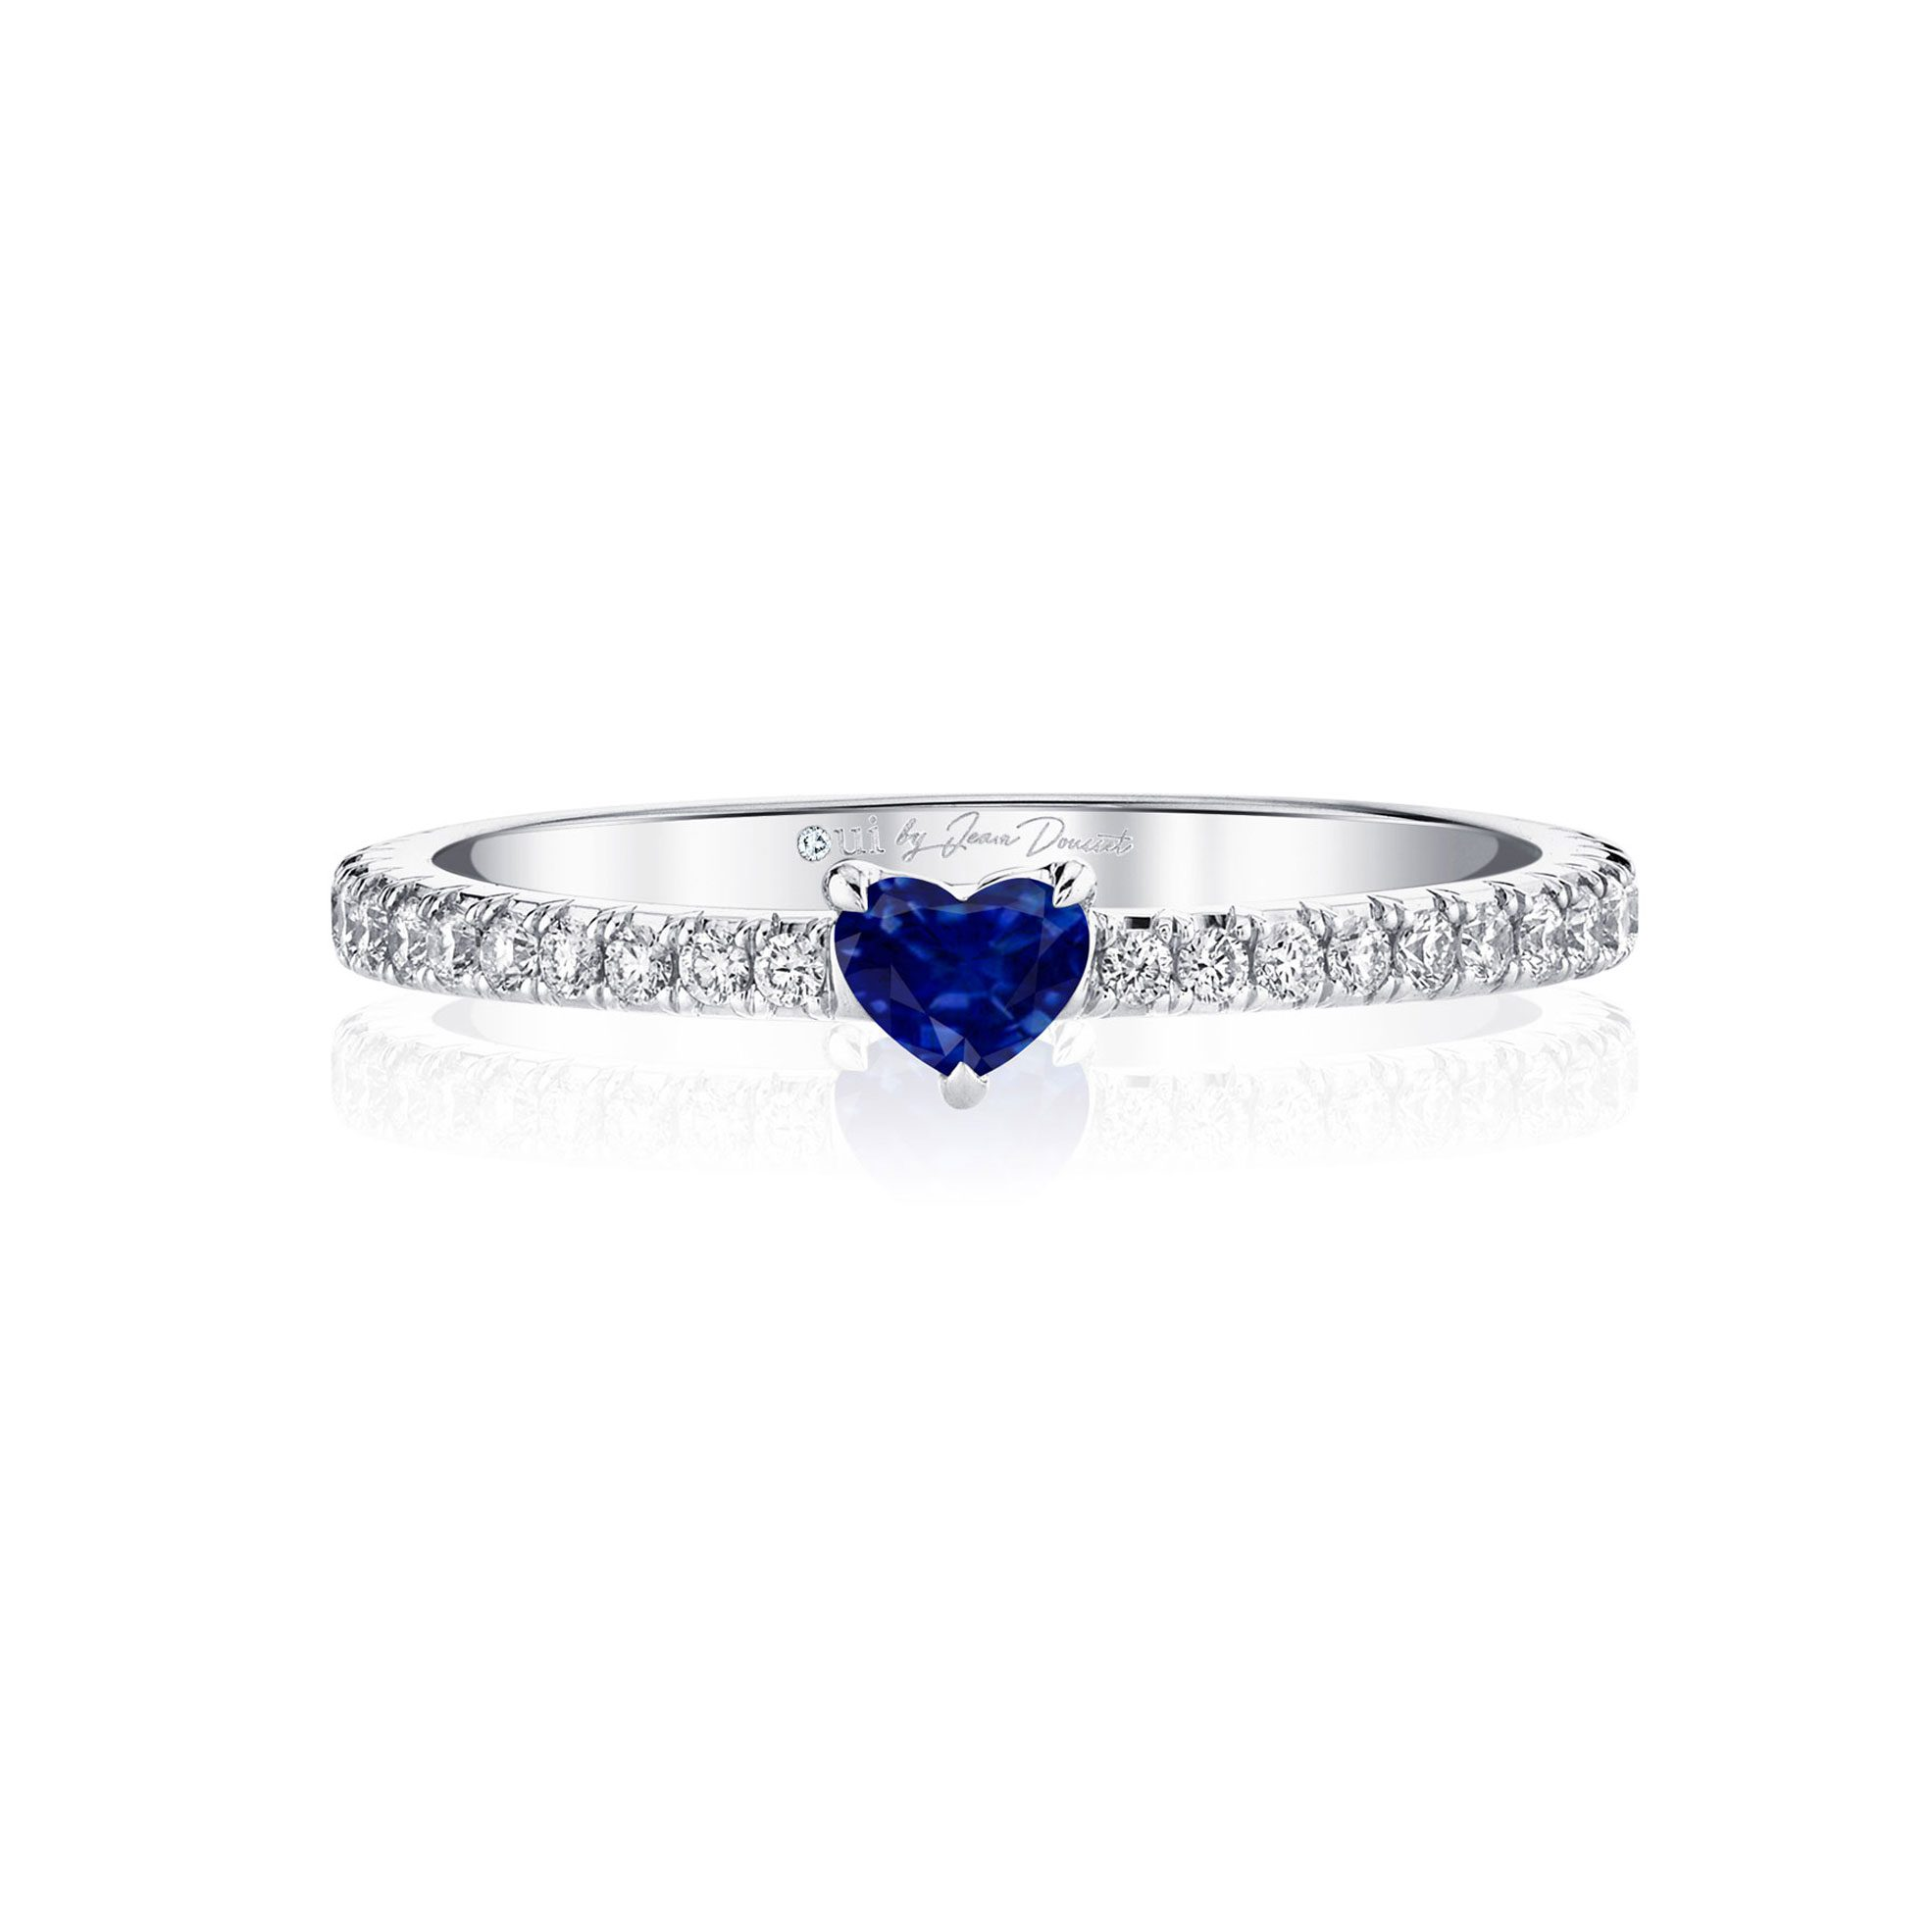 La Petite Heart Blue Sapphire Ring diamond pavé band in 18k White Gold Front View by Oui by Jean Dousset